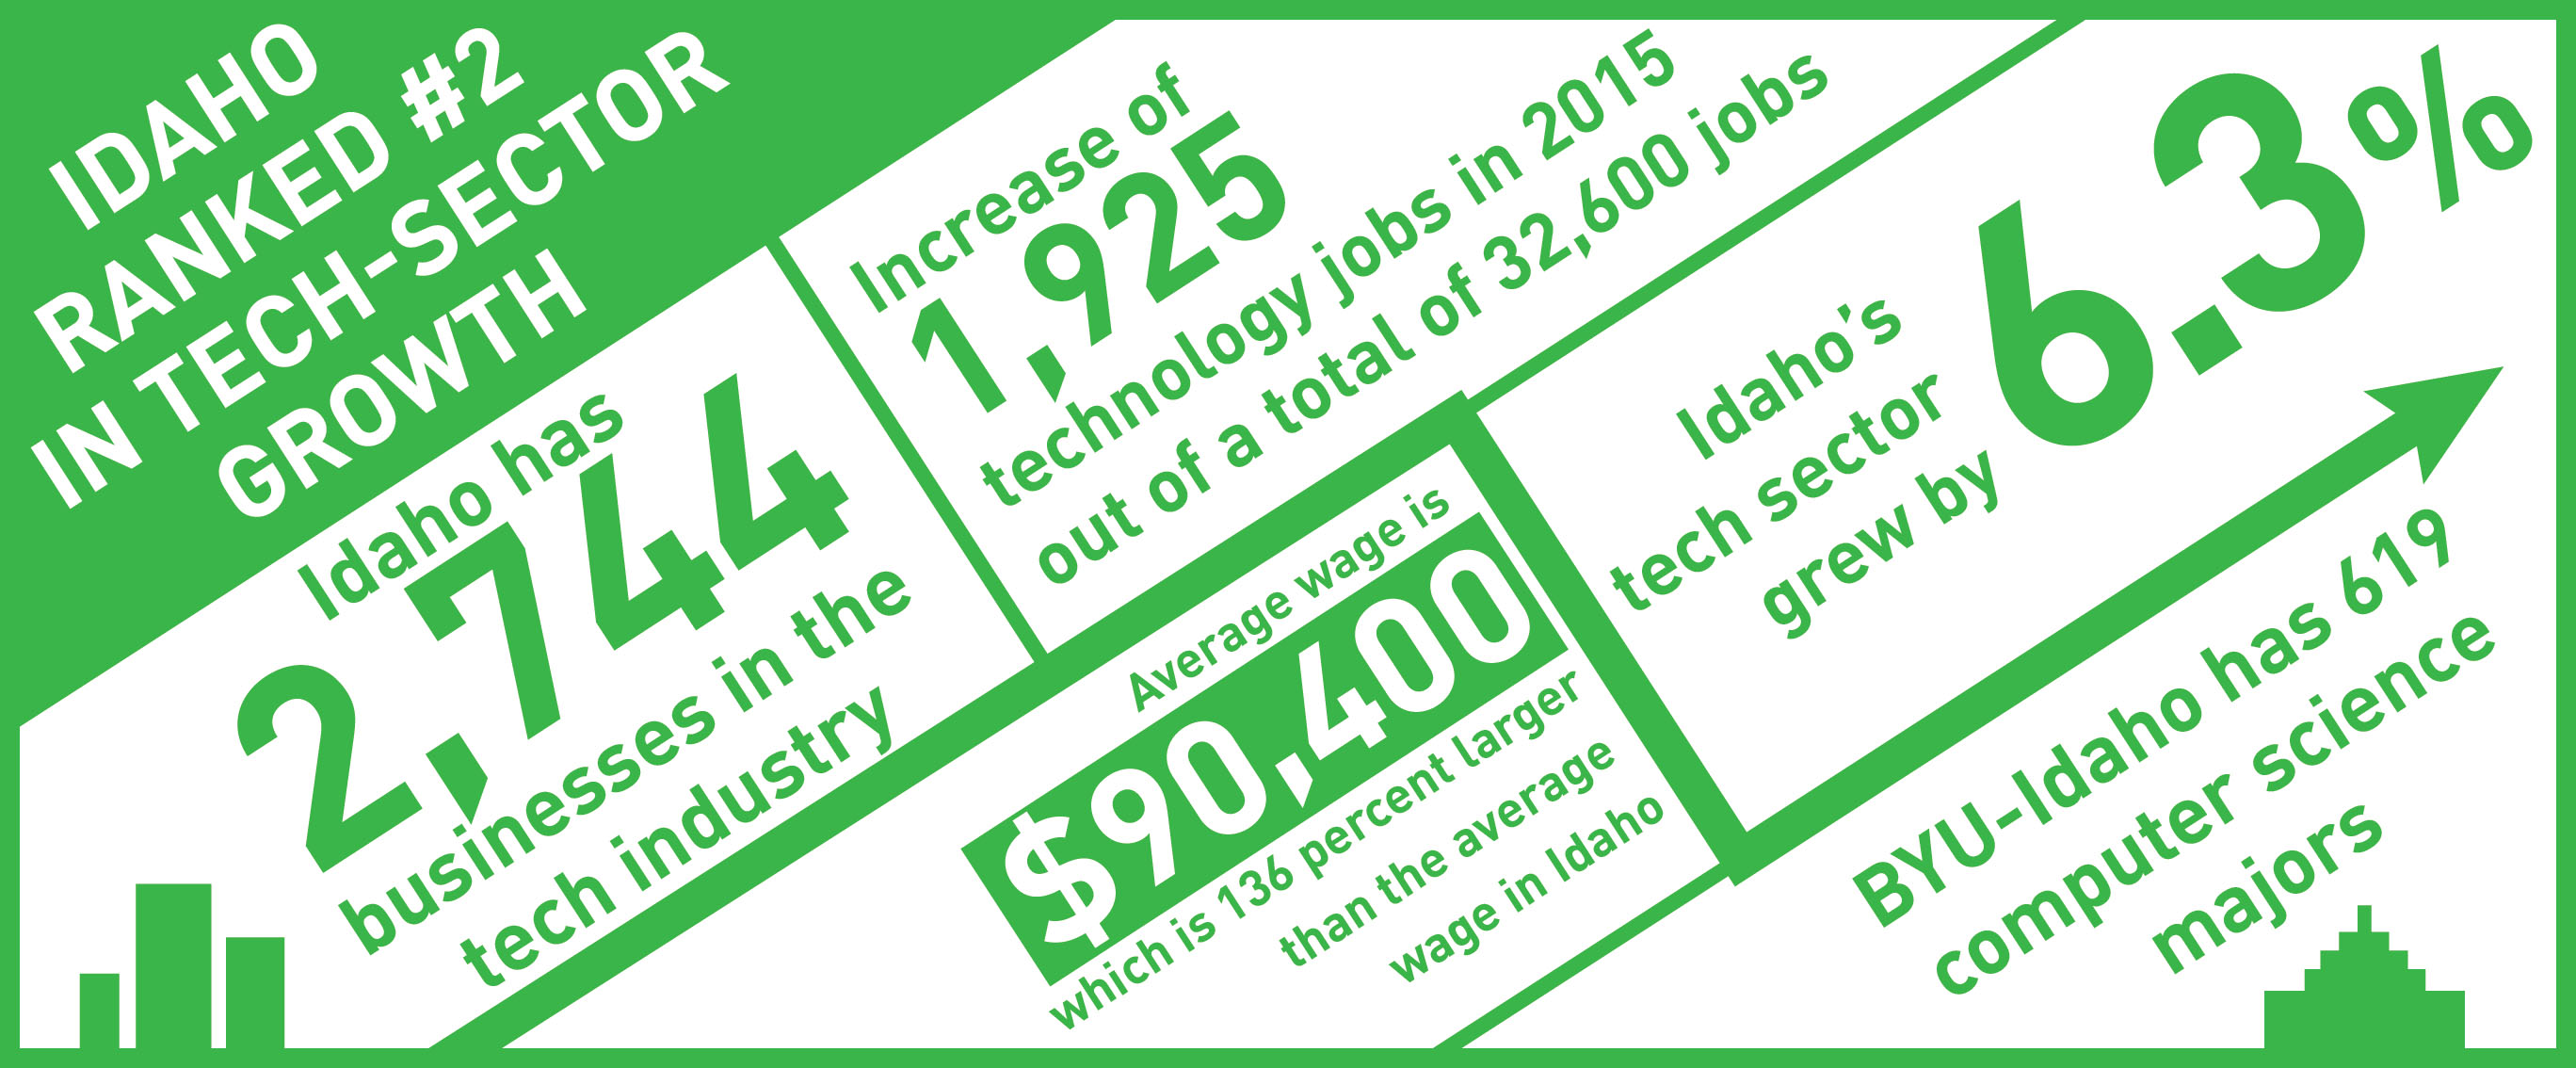 Idaho manages tech sector surplus